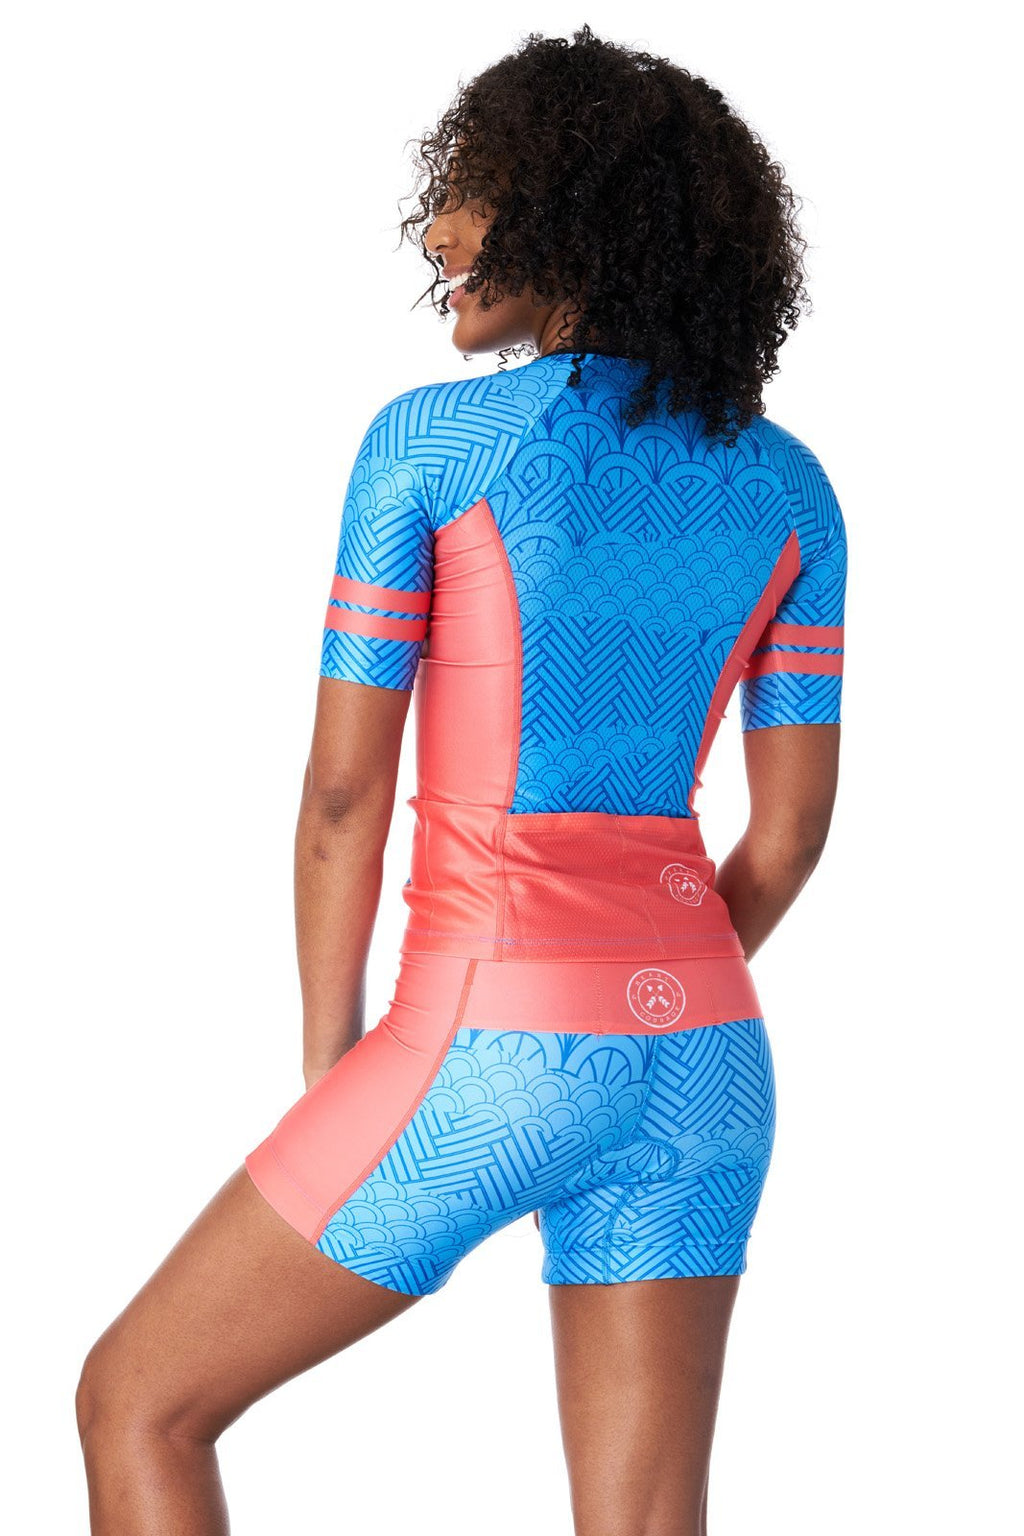 Coeur Sports Sleeved Triathlon Speed Jersey Women's Sleeved Triathlon Aero Top in Serenity